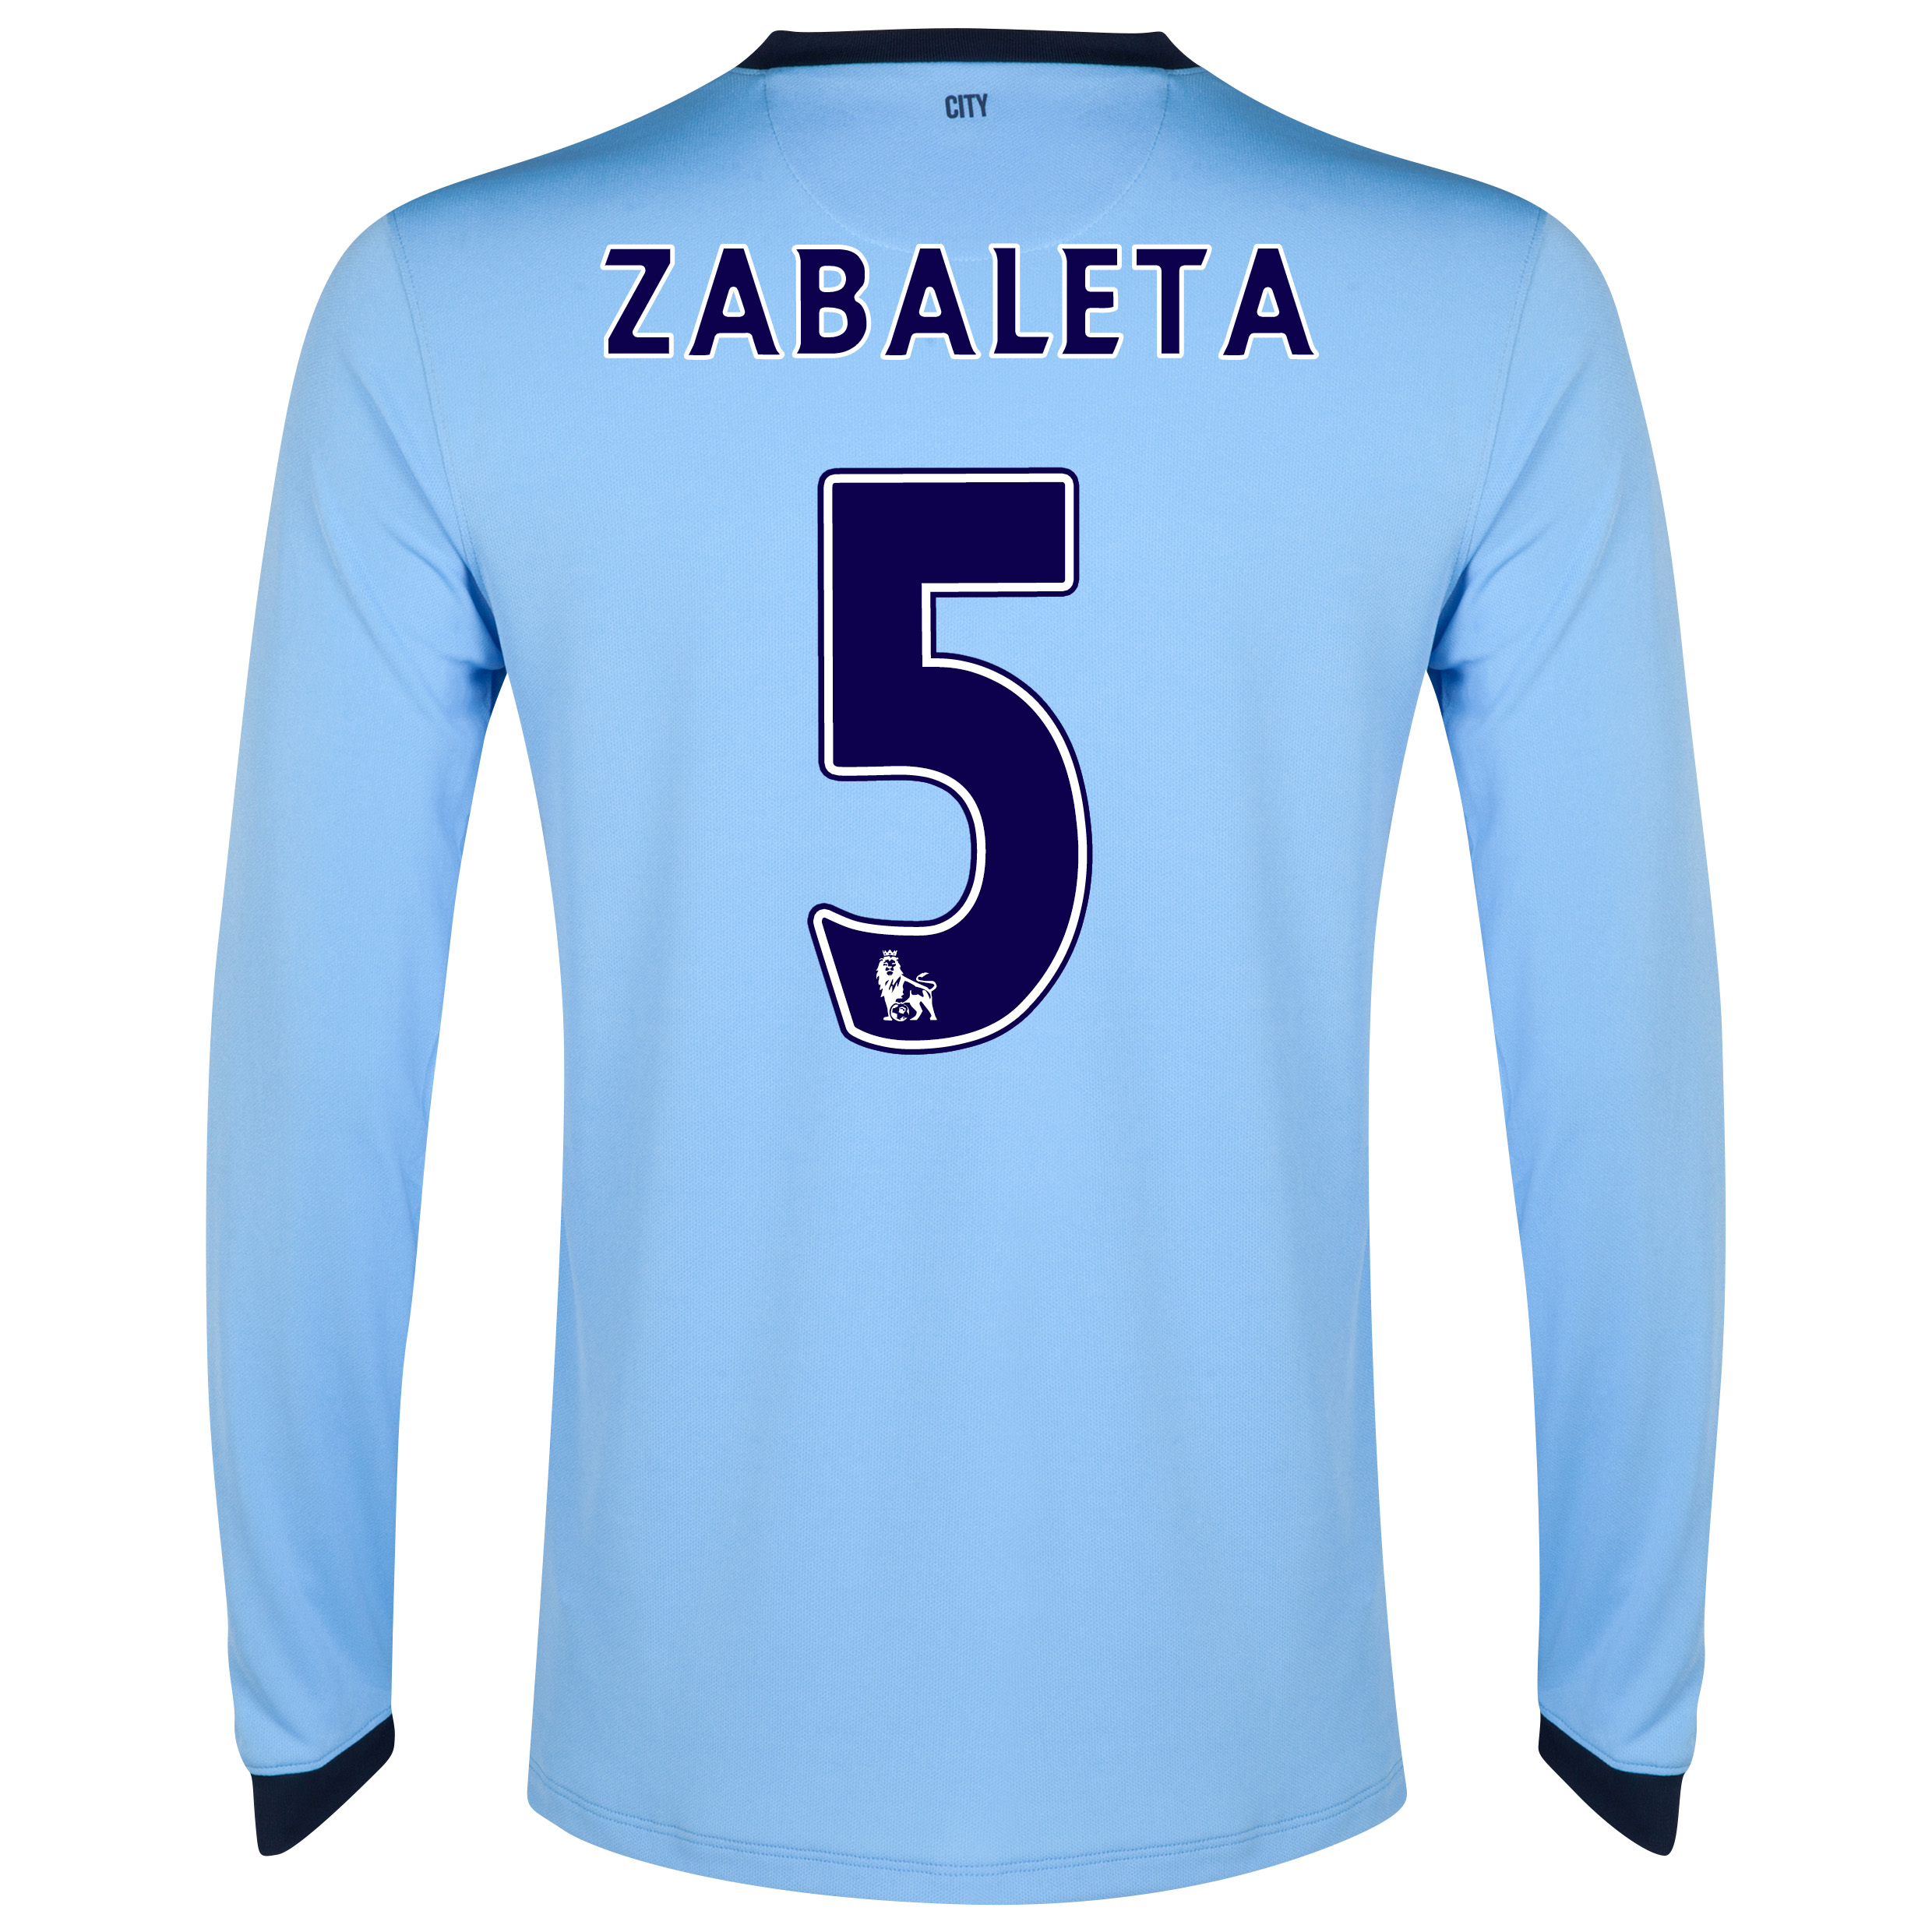 Manchester City Home Shirt 2014/15 - Long Sleeve Sky Blue with Zabaleta 5 printing